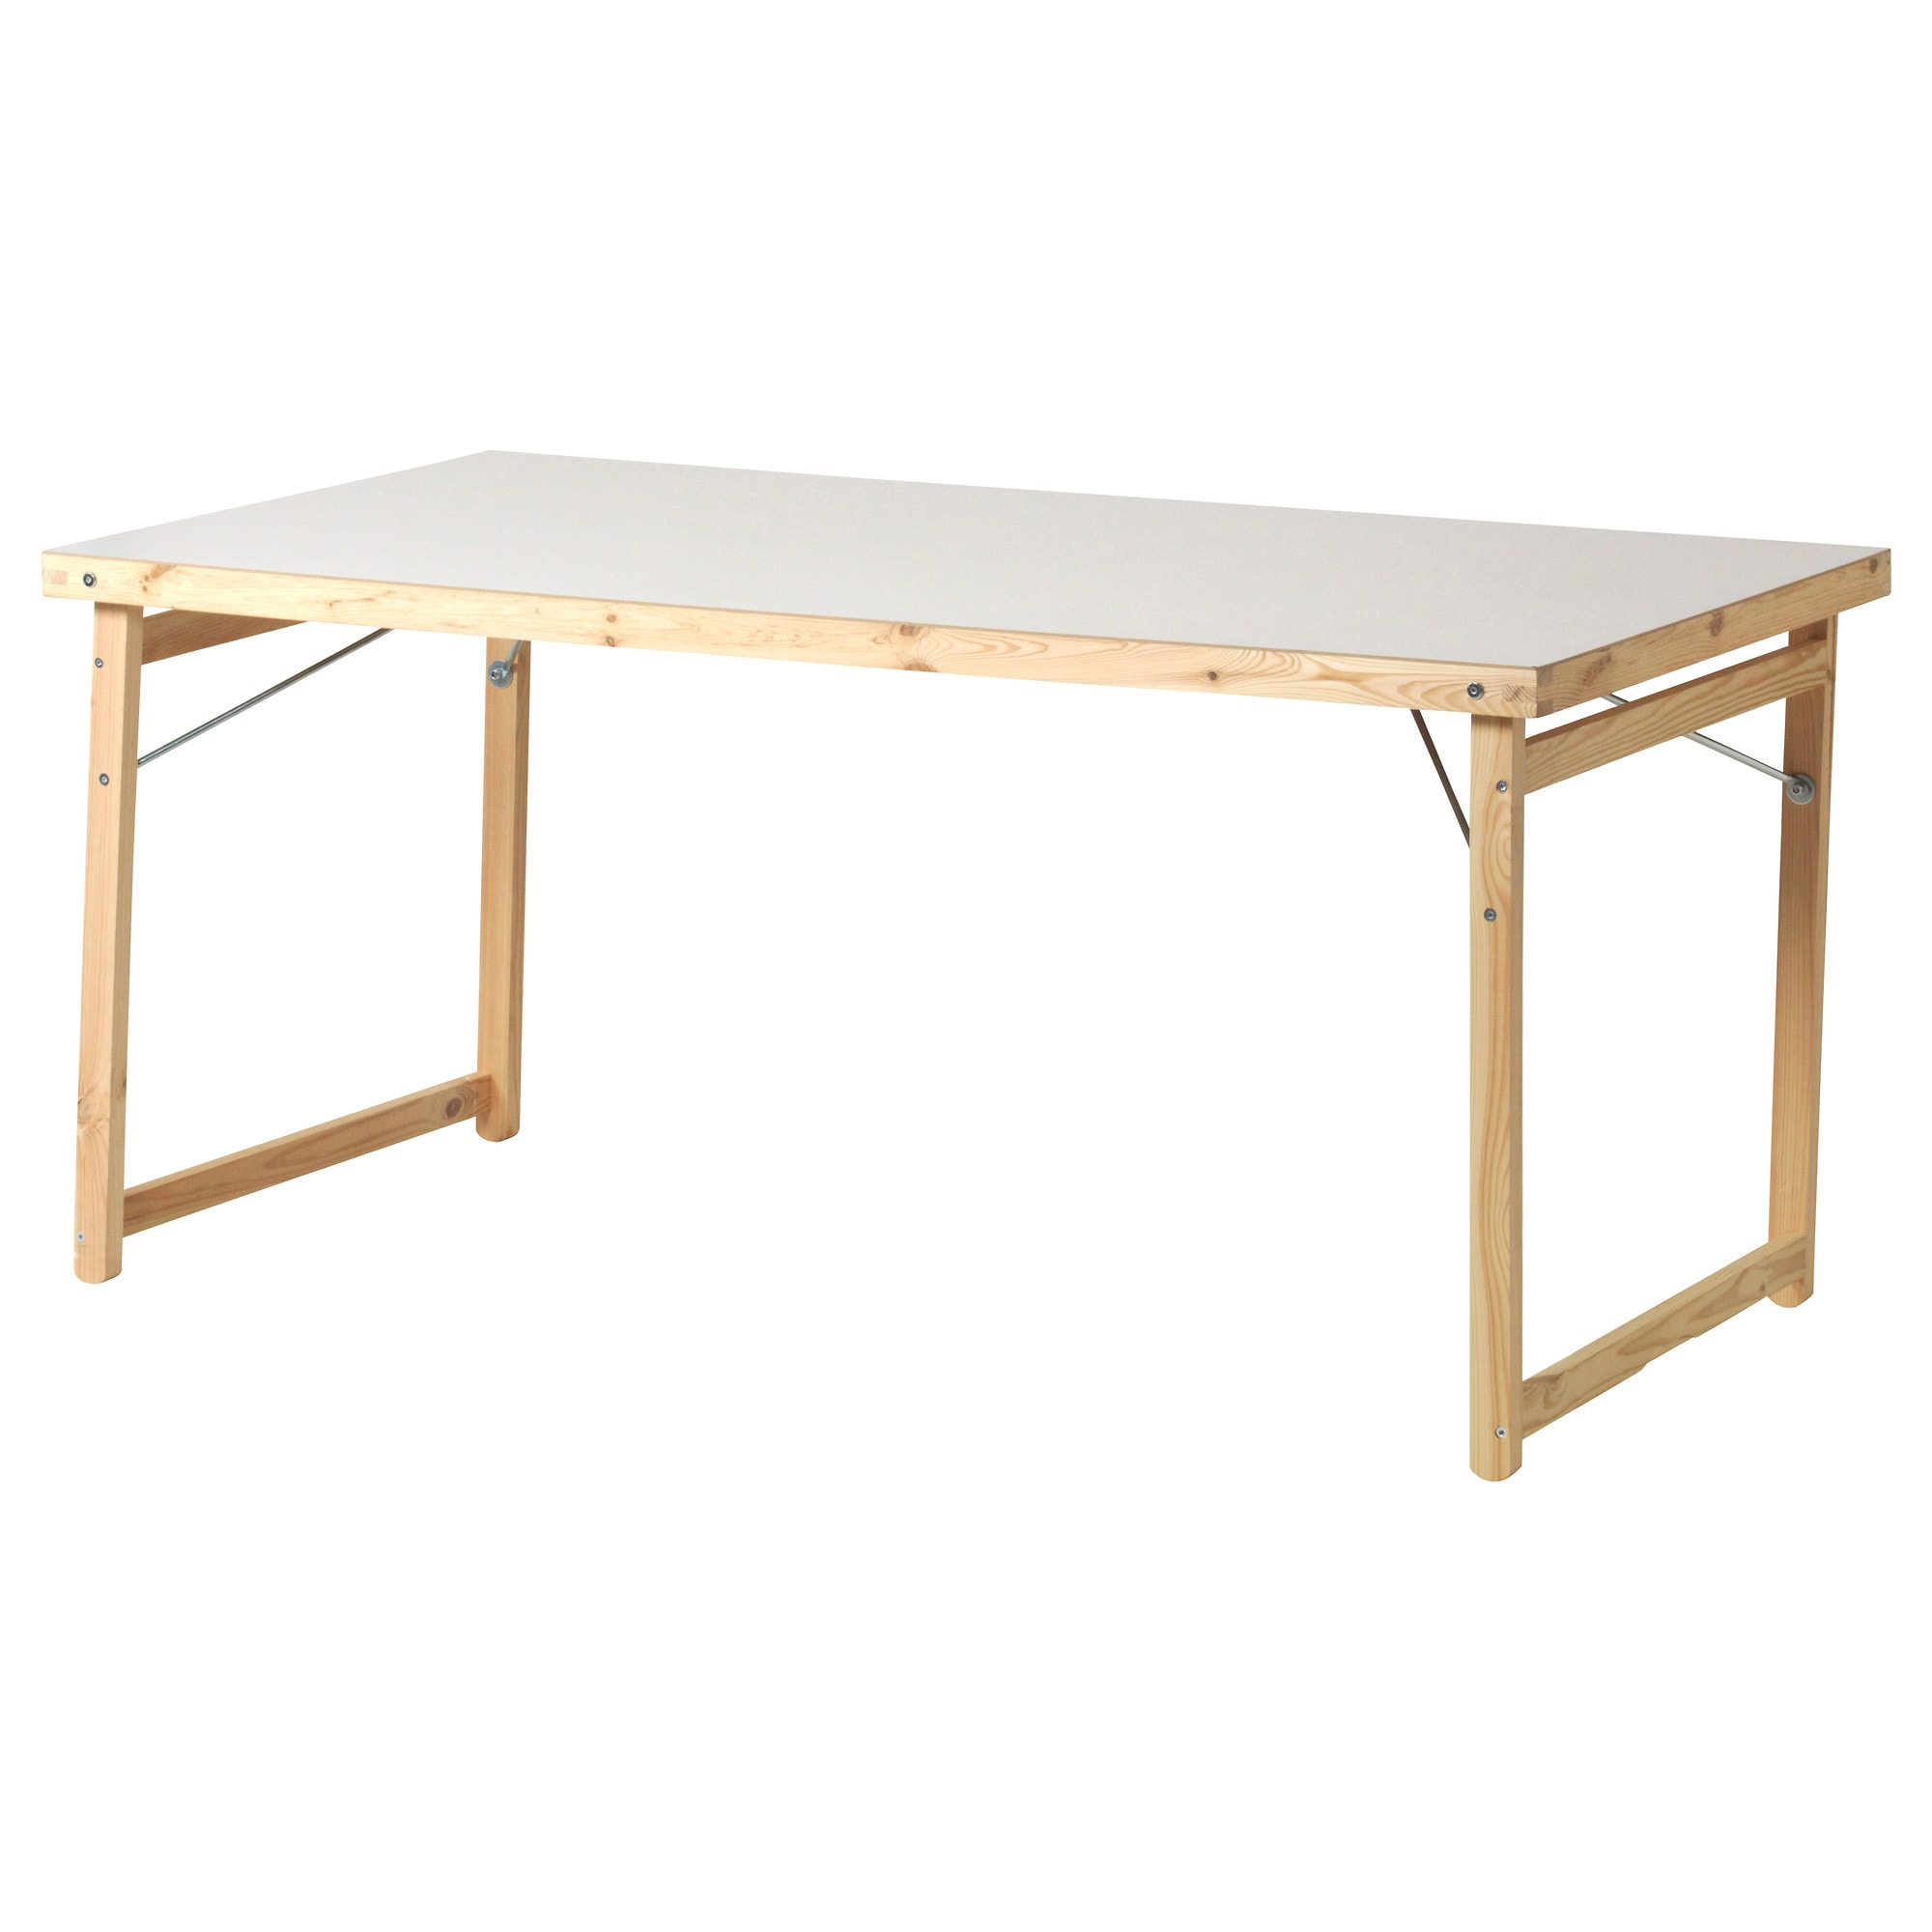 Table 8 personnes ikea maison design for Table ronde 8 personnes dimensions